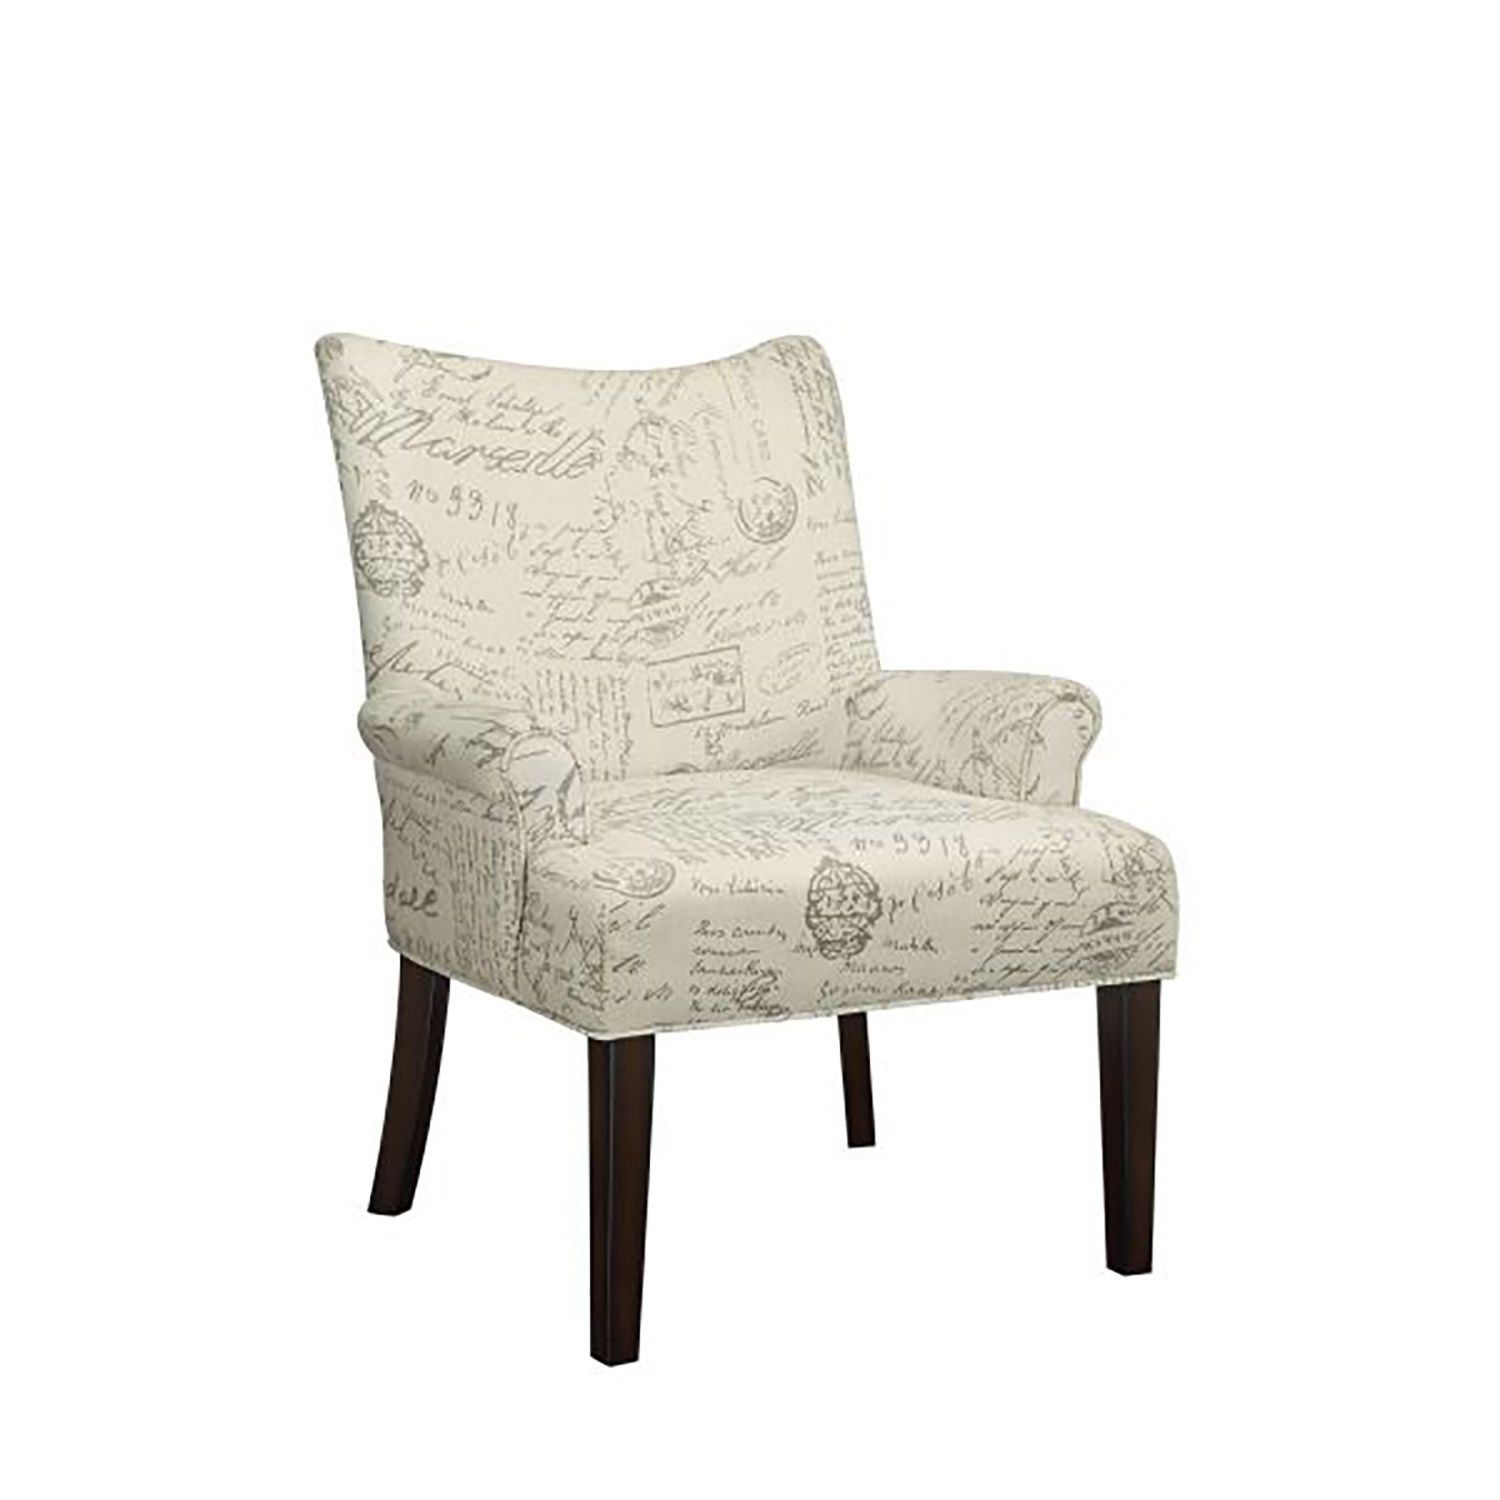 Accent Chair Off White 902149 Coaster Company Afw